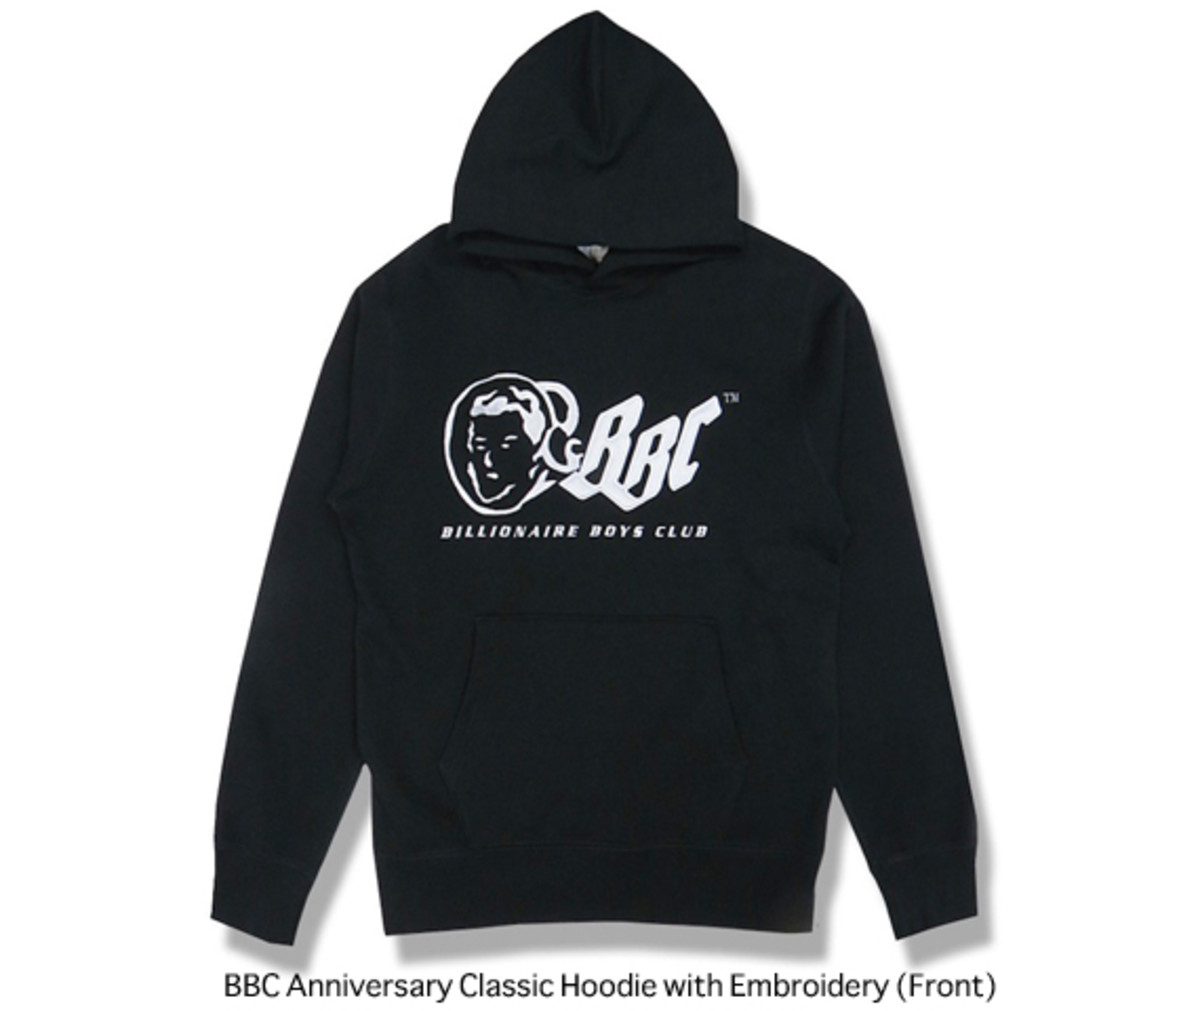 billionaire-boys-club-10th-anniversary-collection-hoodie-black-front